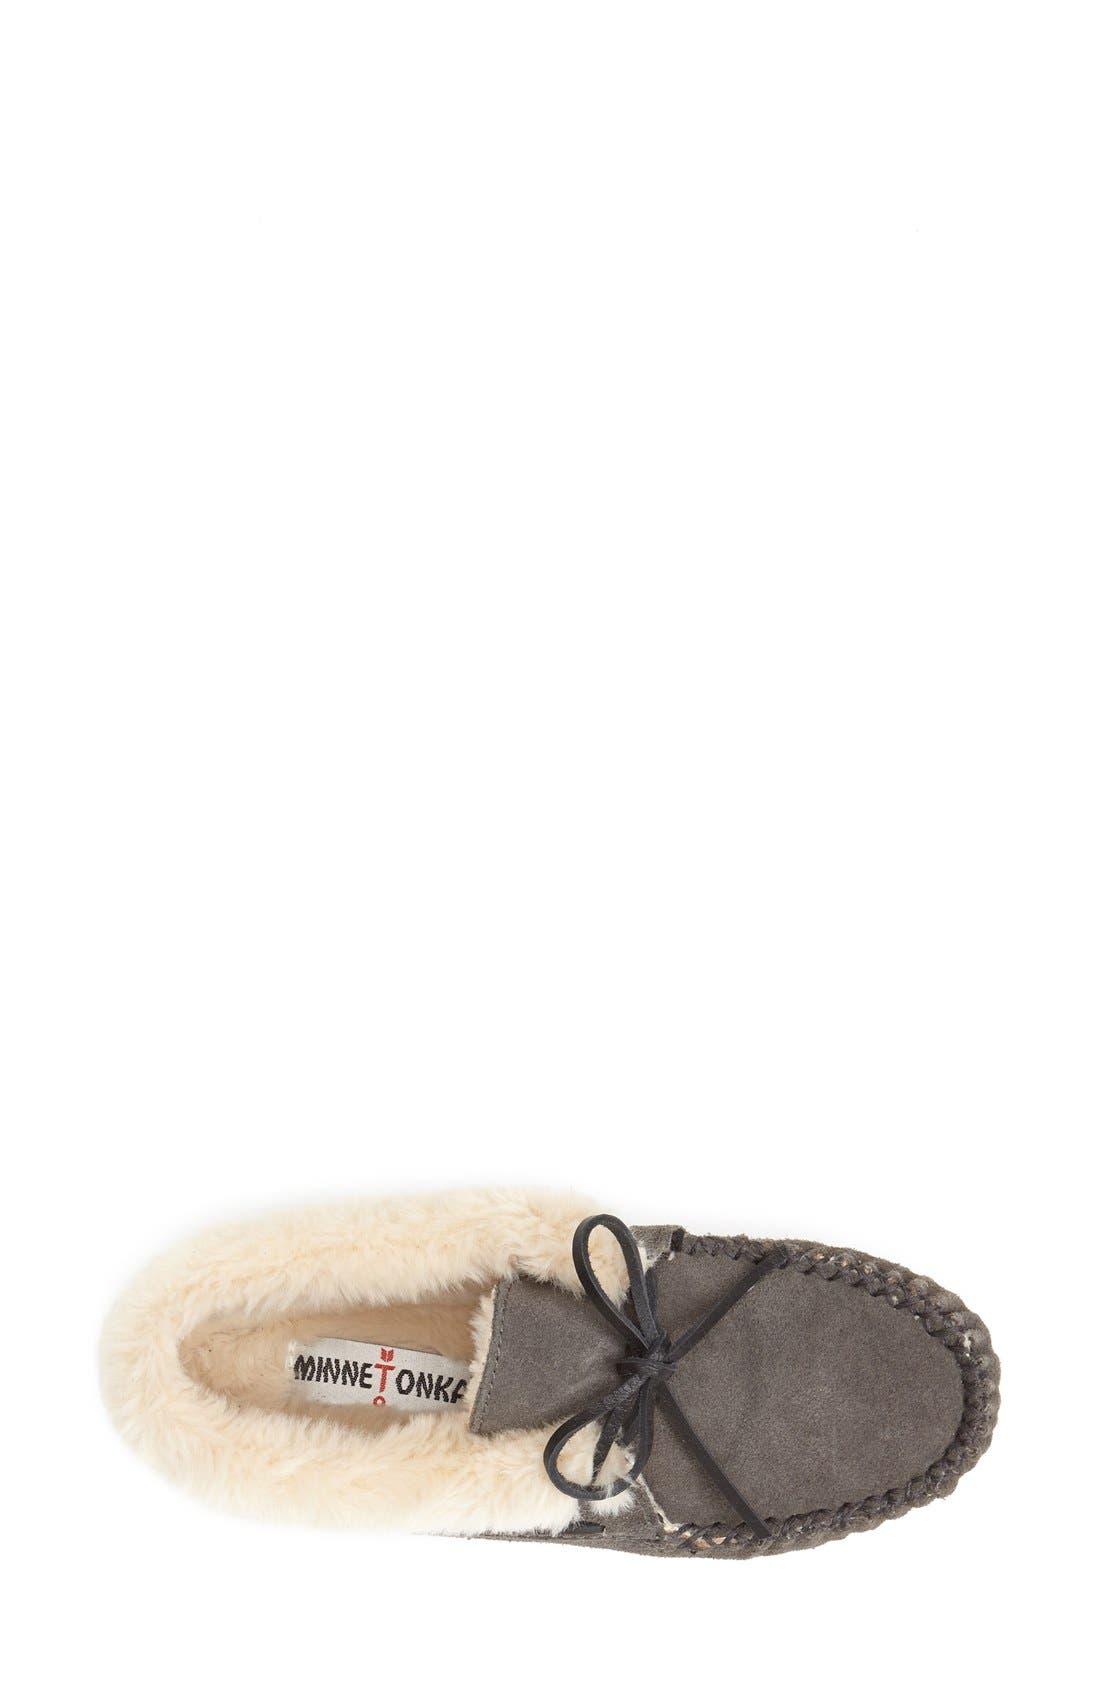 Alternate Image 3  - Minnetonka 'Chrissy' Slipper Bootie (Women)